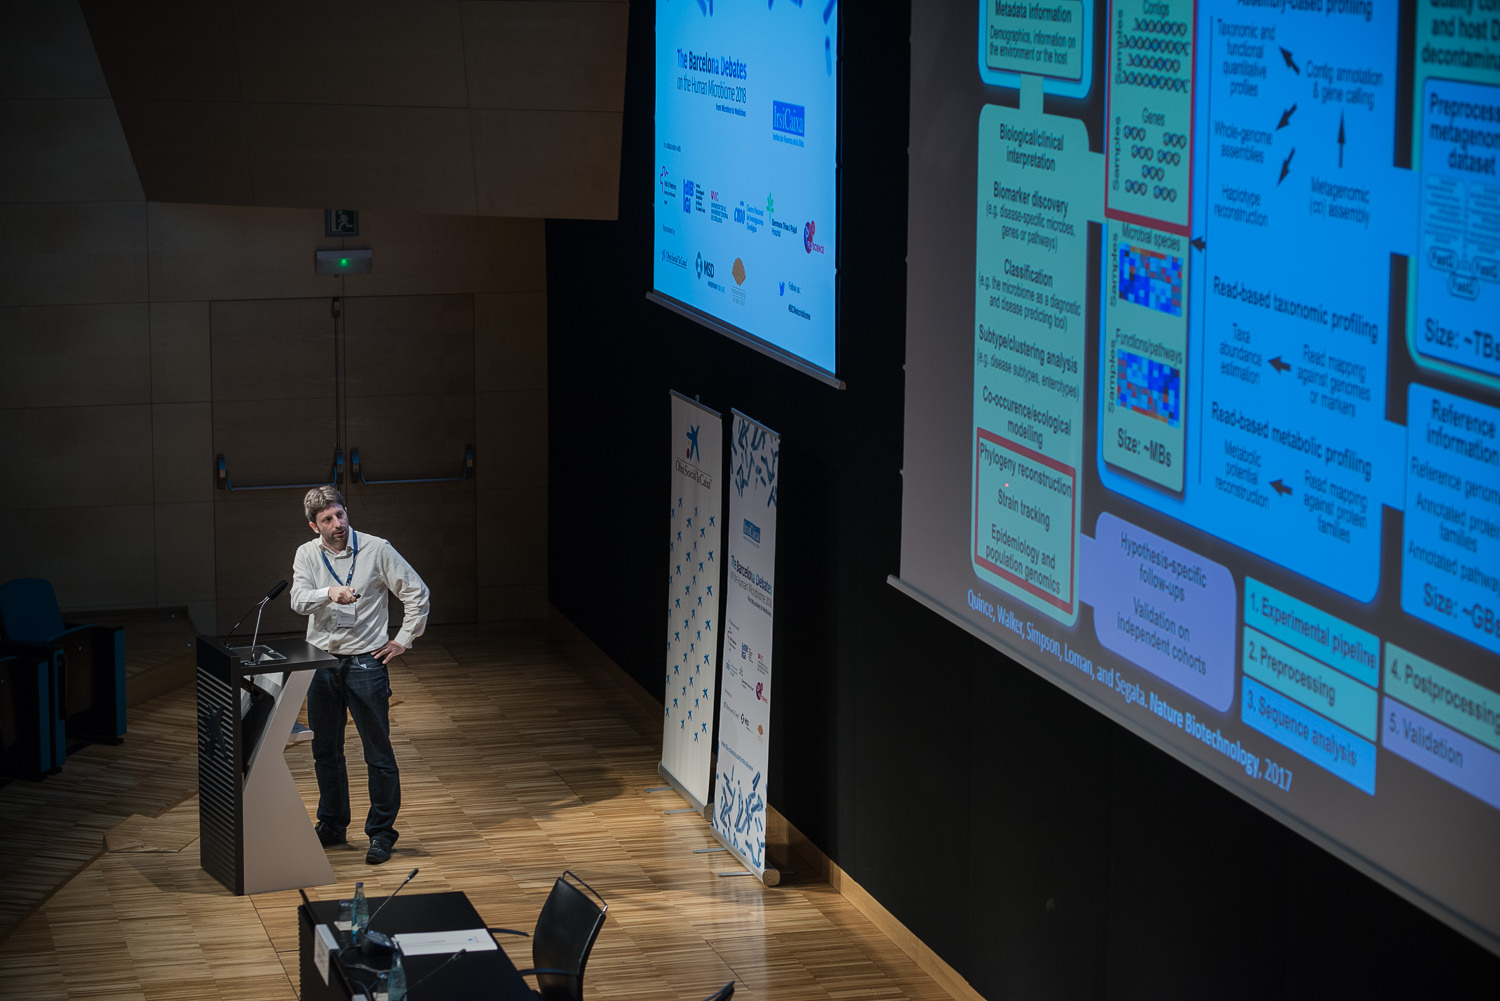 Nicola Segata at The Barcelona Debates on the Human Microbiome 2018